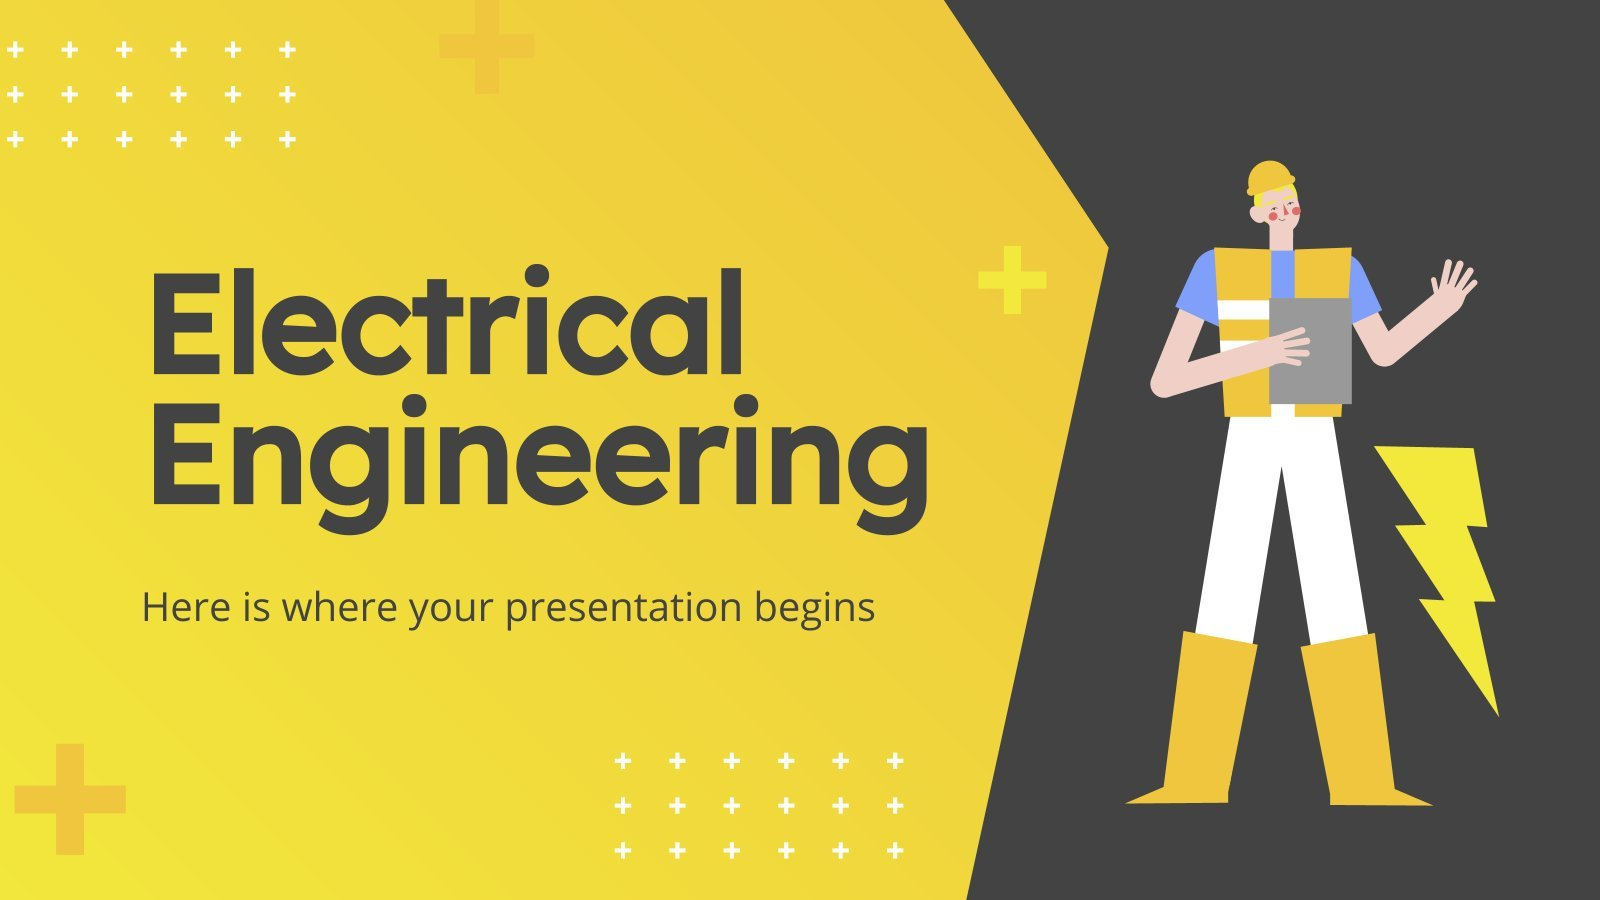 Electrical Engineering presentation template